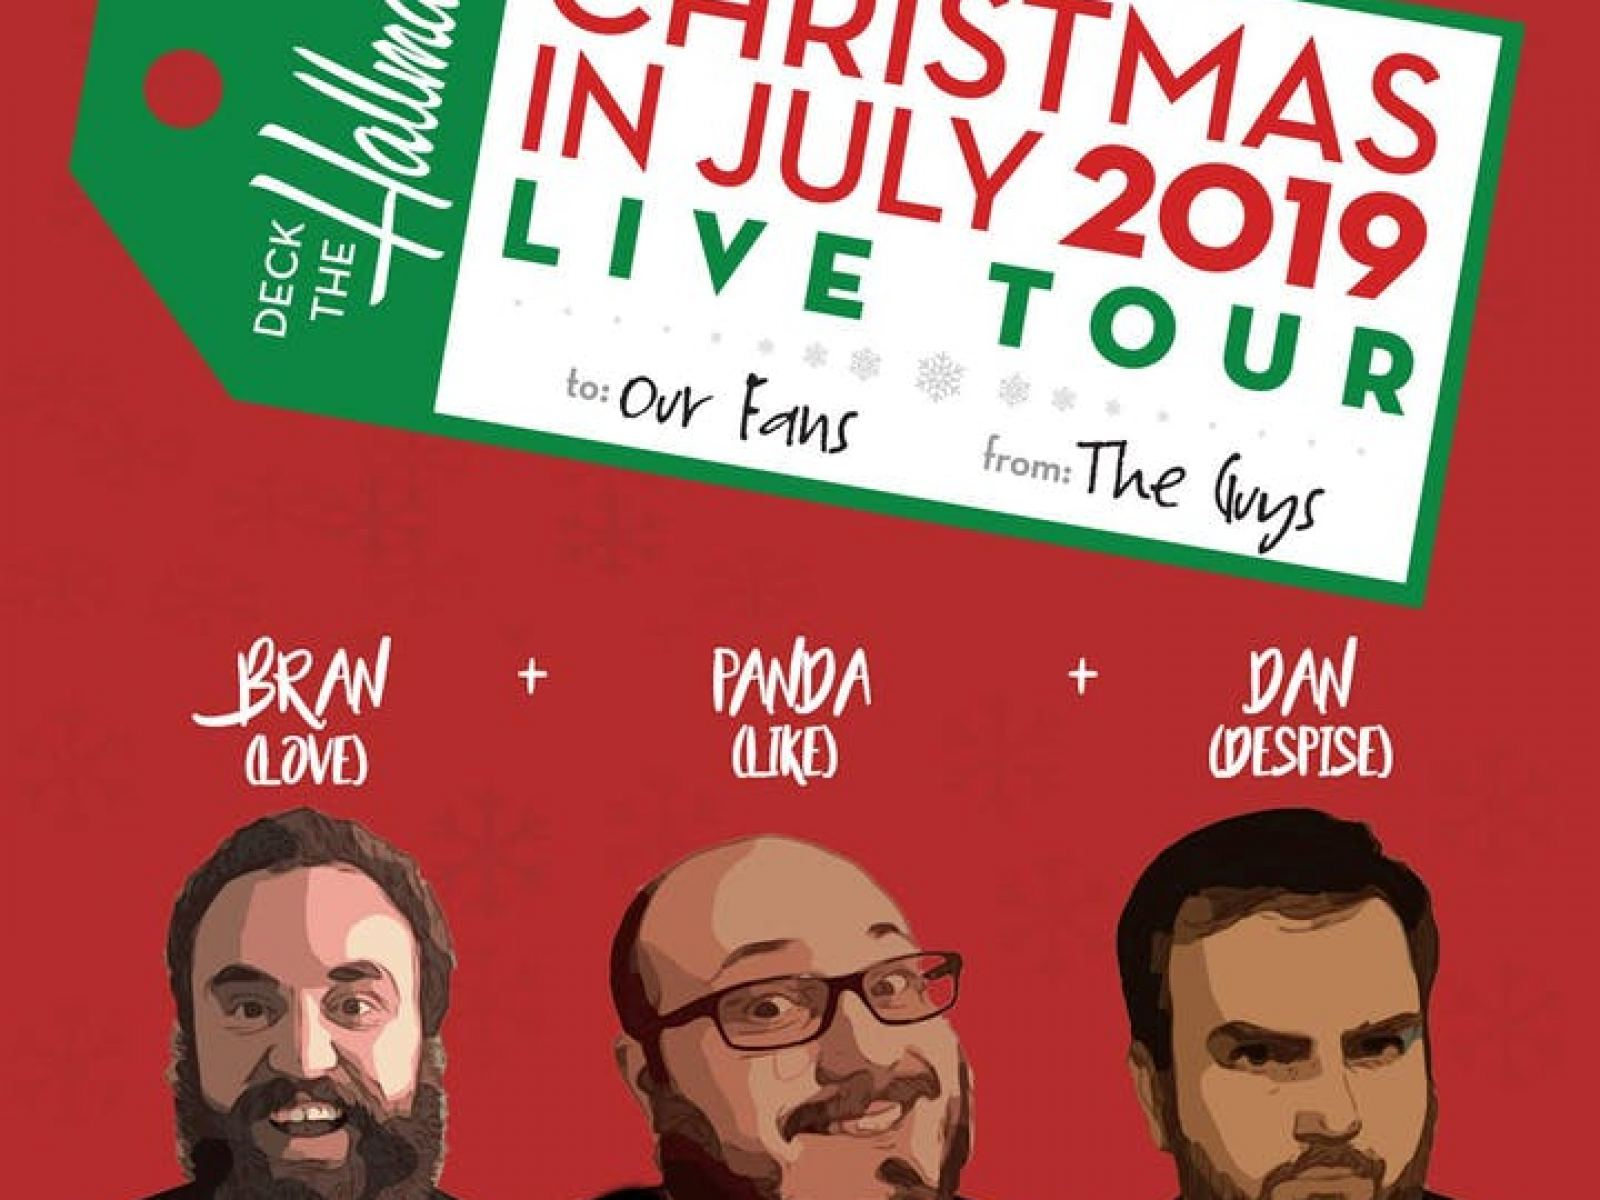 Hallmark Christmas In July 2019.Deck The Hallmark Christmas In July Comedy Show Discover